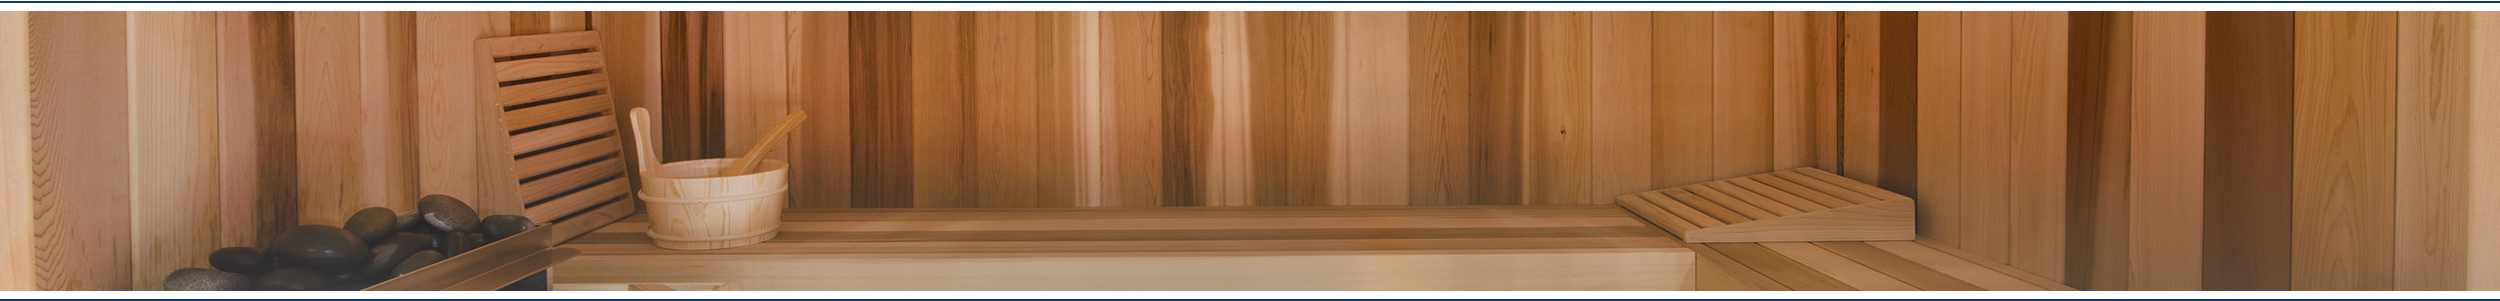 Sauna & Steam Rooms at Wensum Pools Ltd banner image